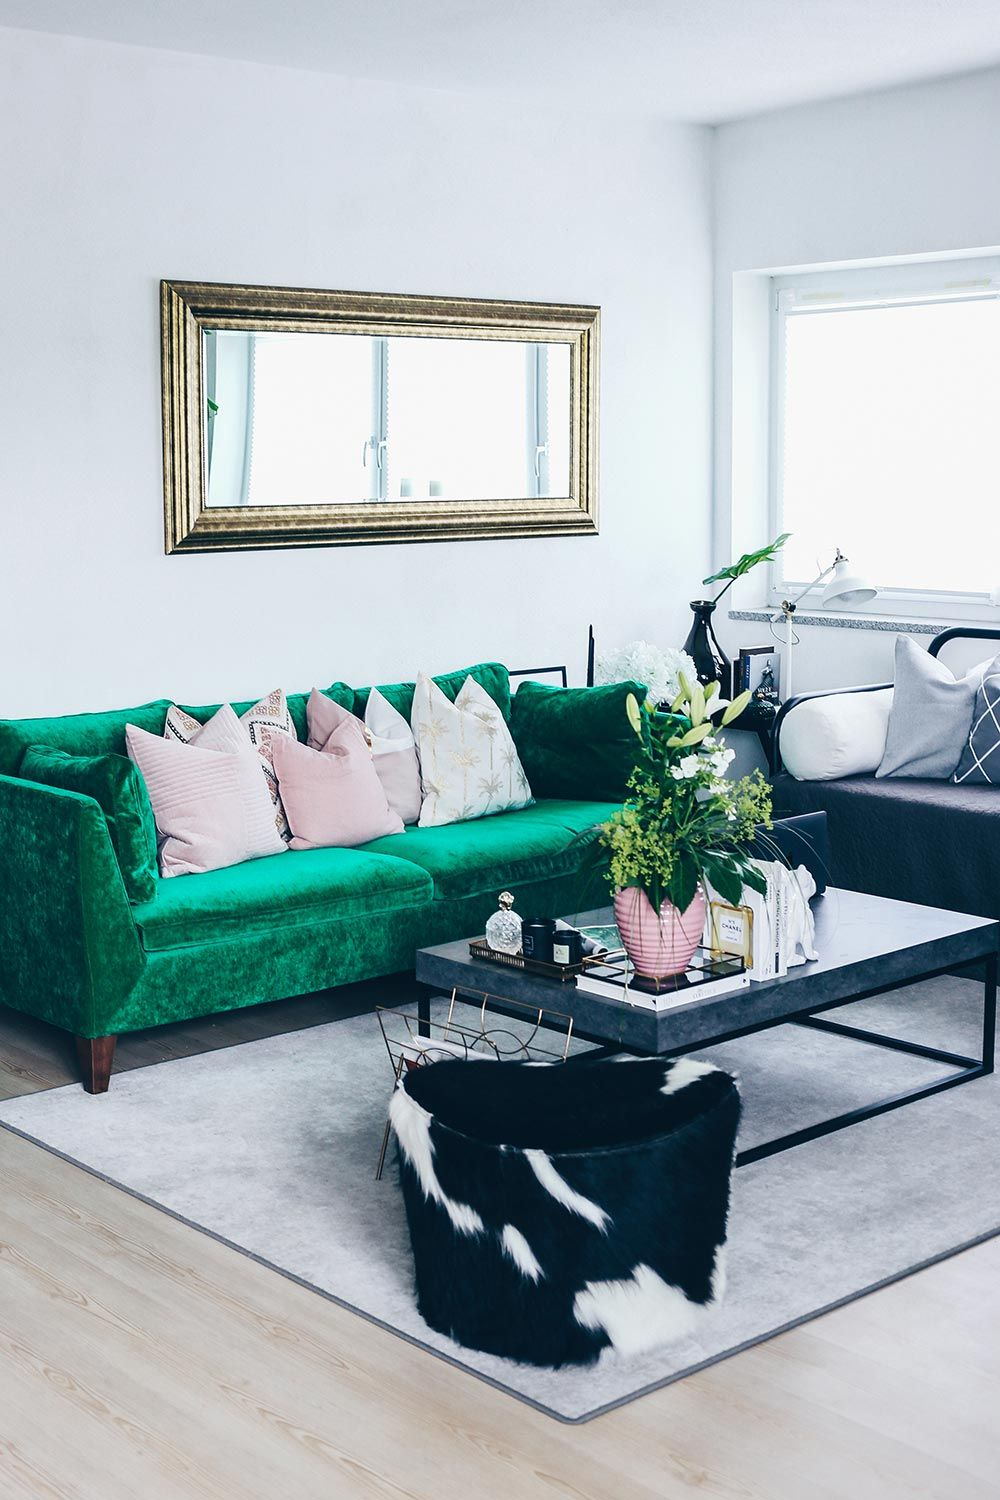 ... Coffee Table Books, Wohnzimmer Ideen, Wohnzimmer Inspiration, Living  Room Ideas, Green Interior Inspiration, Grünes Sofa, Stockholm Sofa,  Industrial S